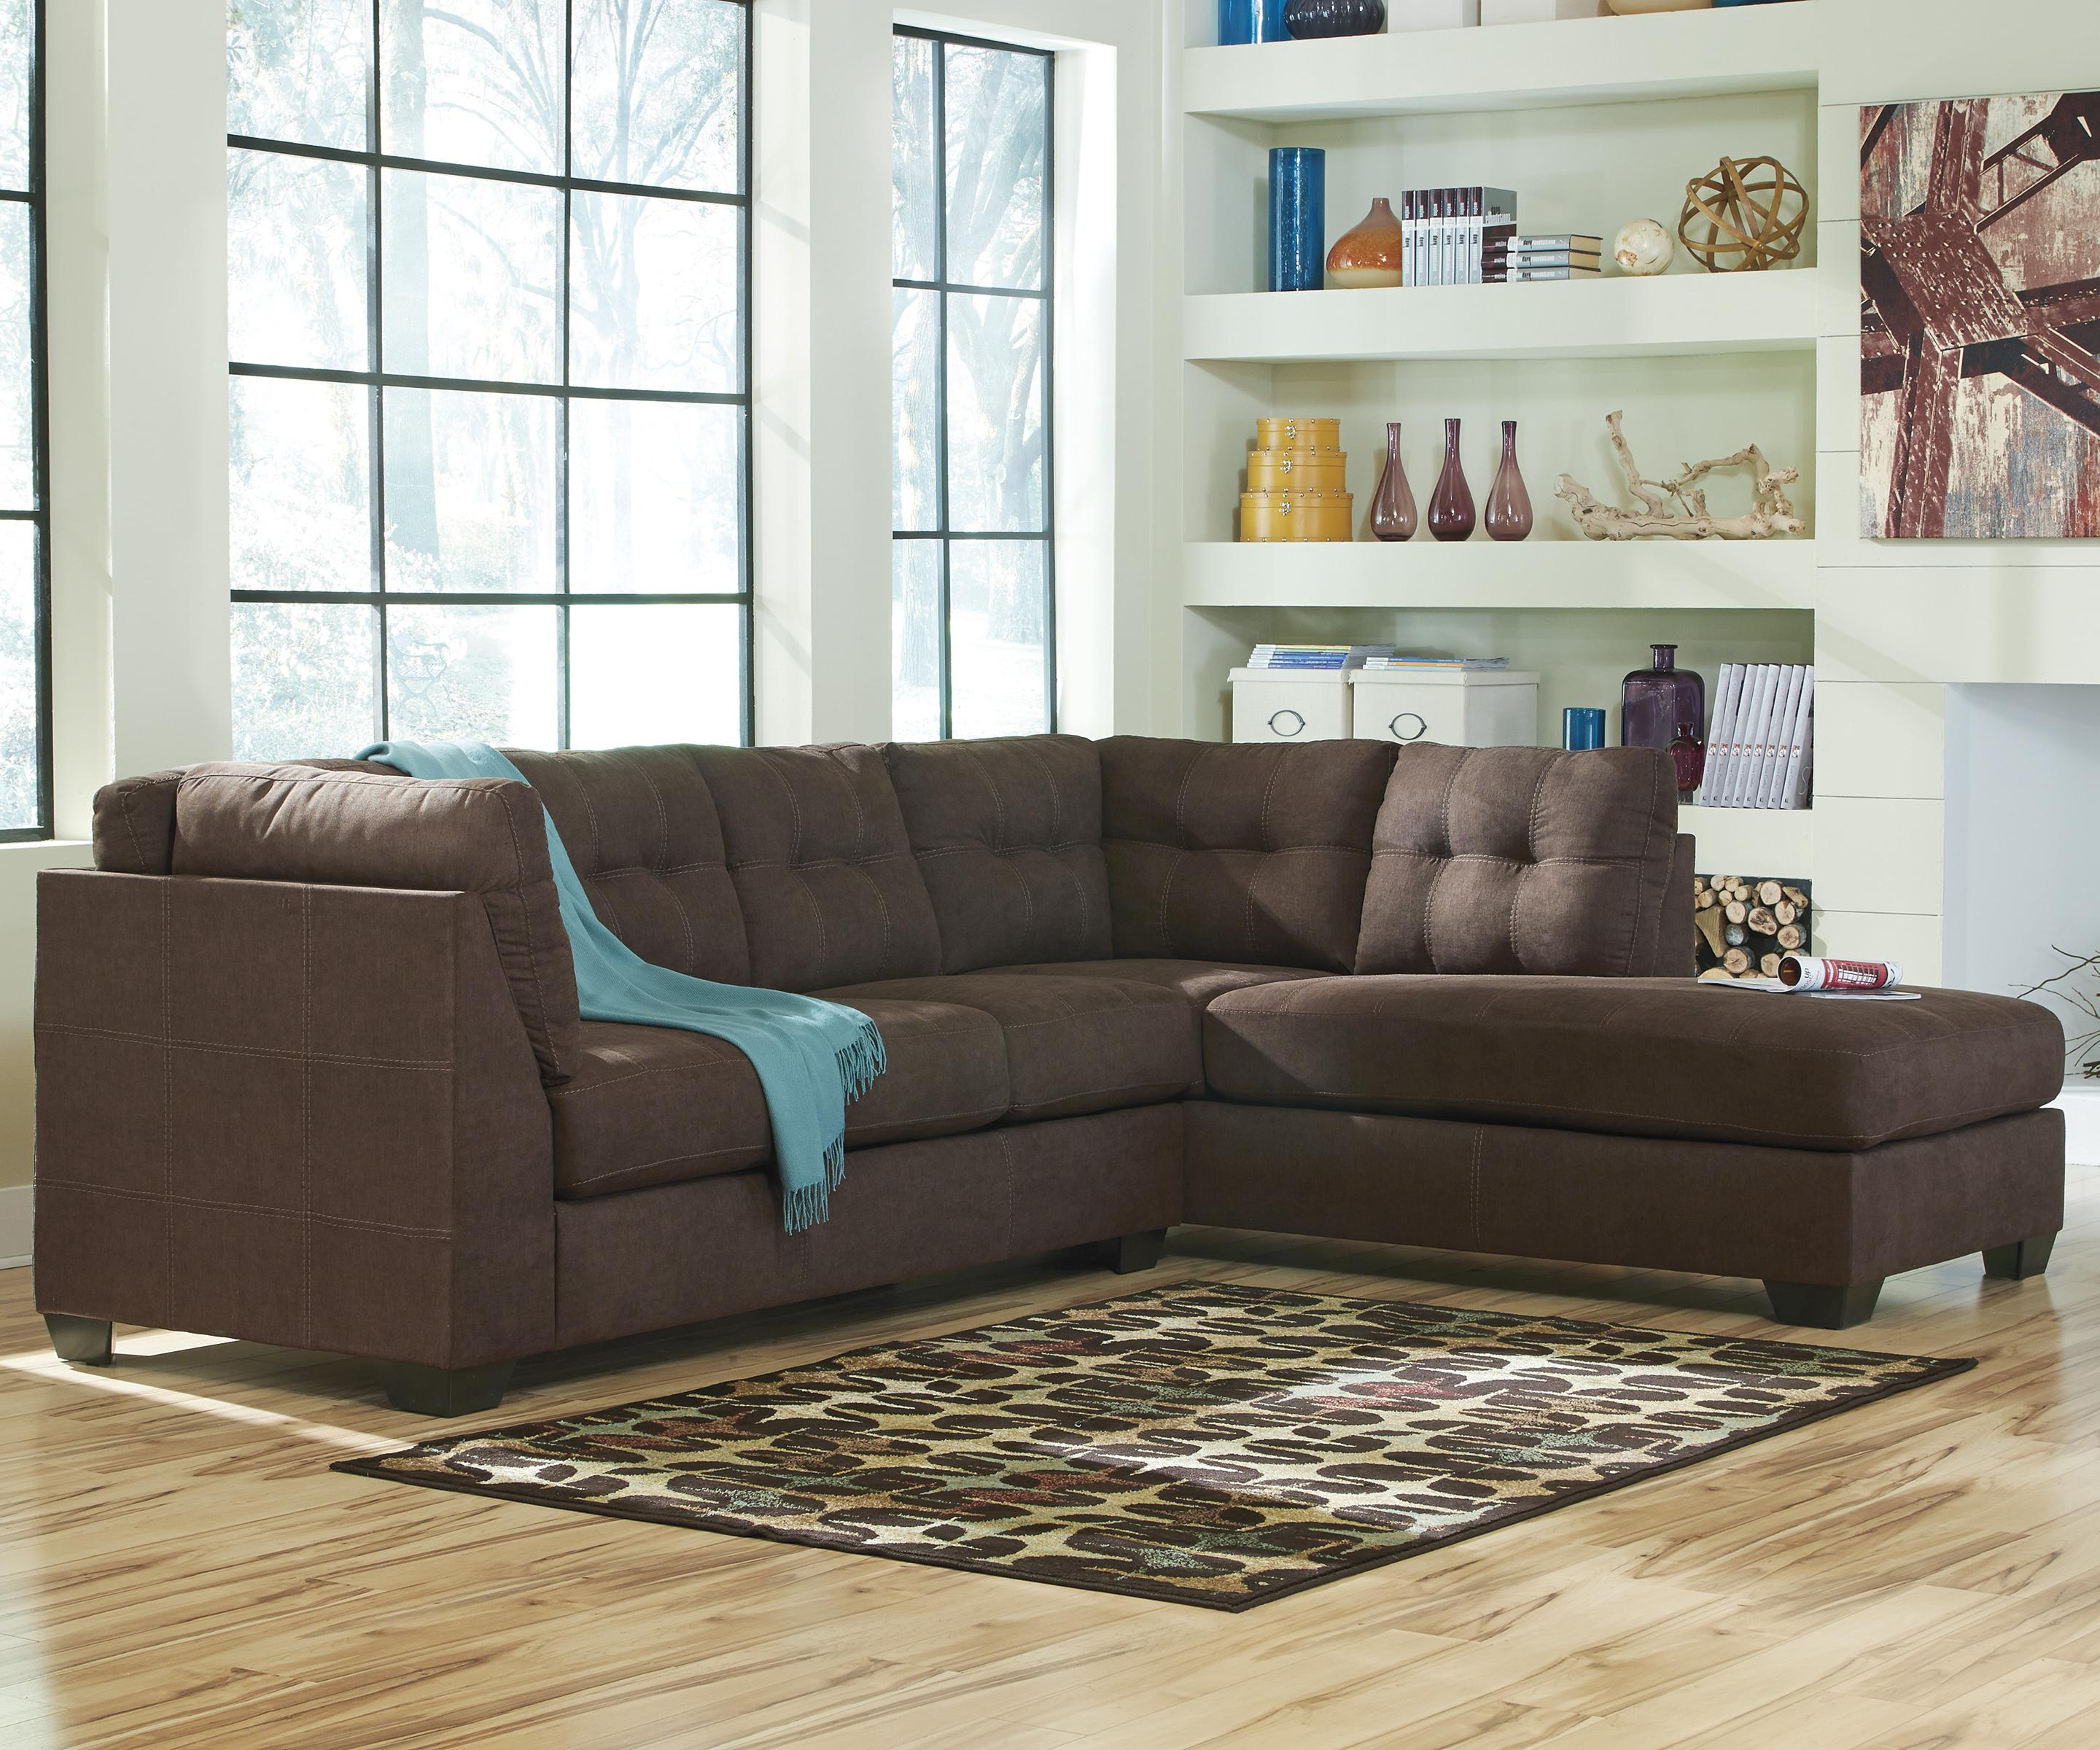 Sofa Sleeper Chaise: 2-Piece Sectional W/ Sleeper Sofa & Right Chaise By